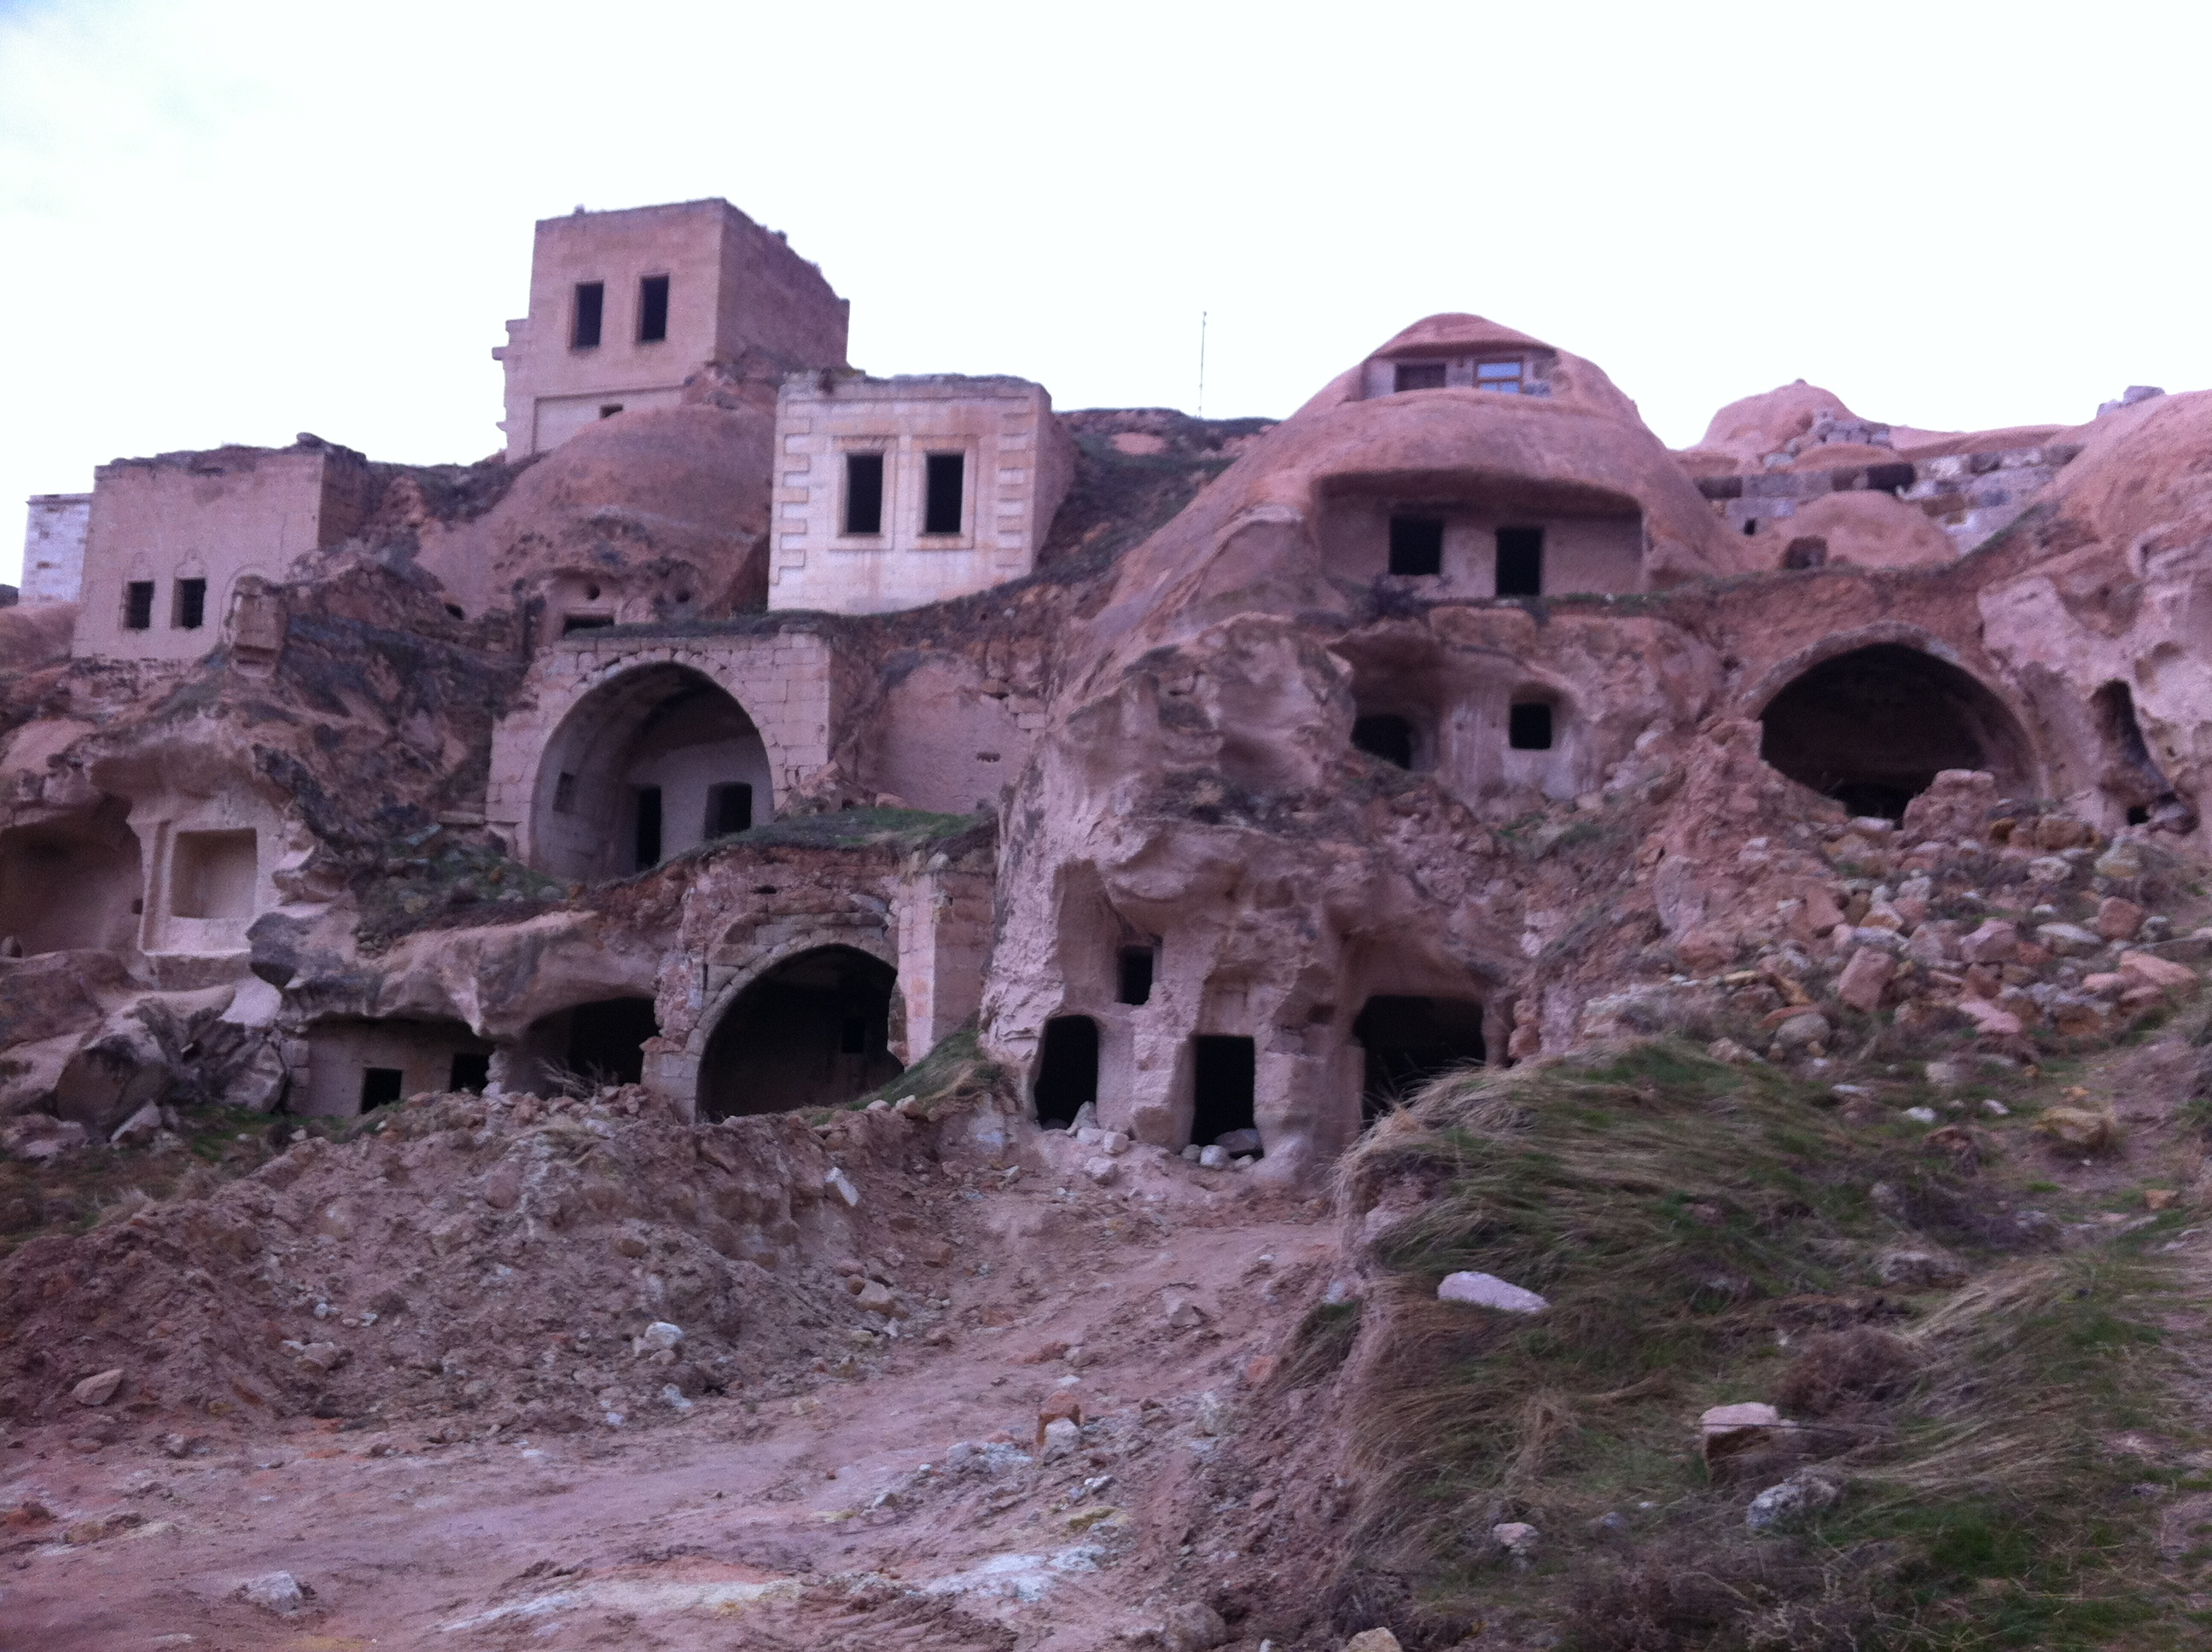 underground cave home. Cave Houses and Ferry Chimneys Cappadocia Turkey  Underground Cities Churches Traveling